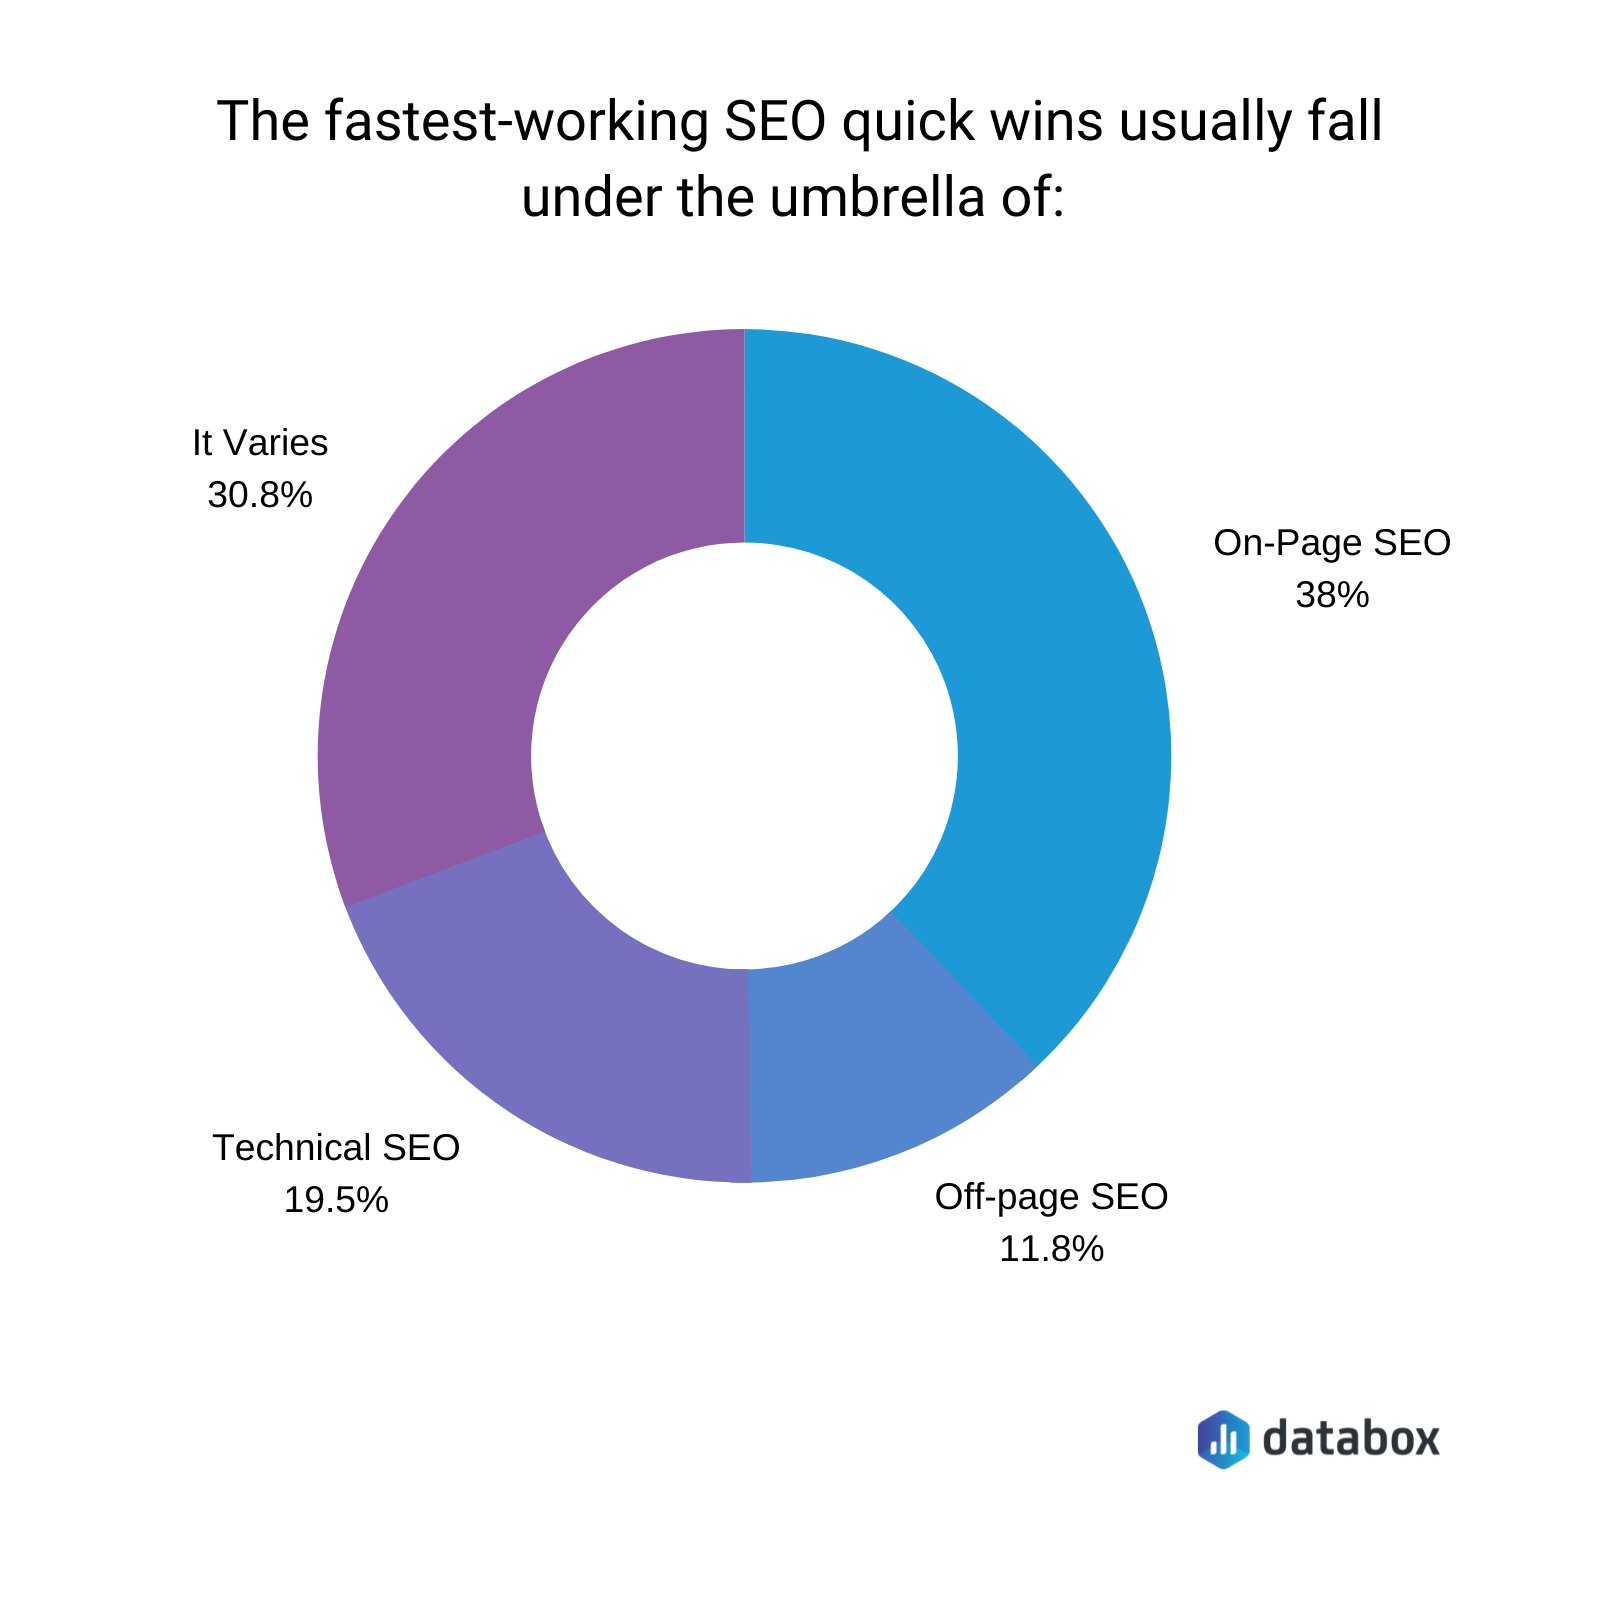 the fastest working seo quick wins usually fall under the umbrella of on-page seo